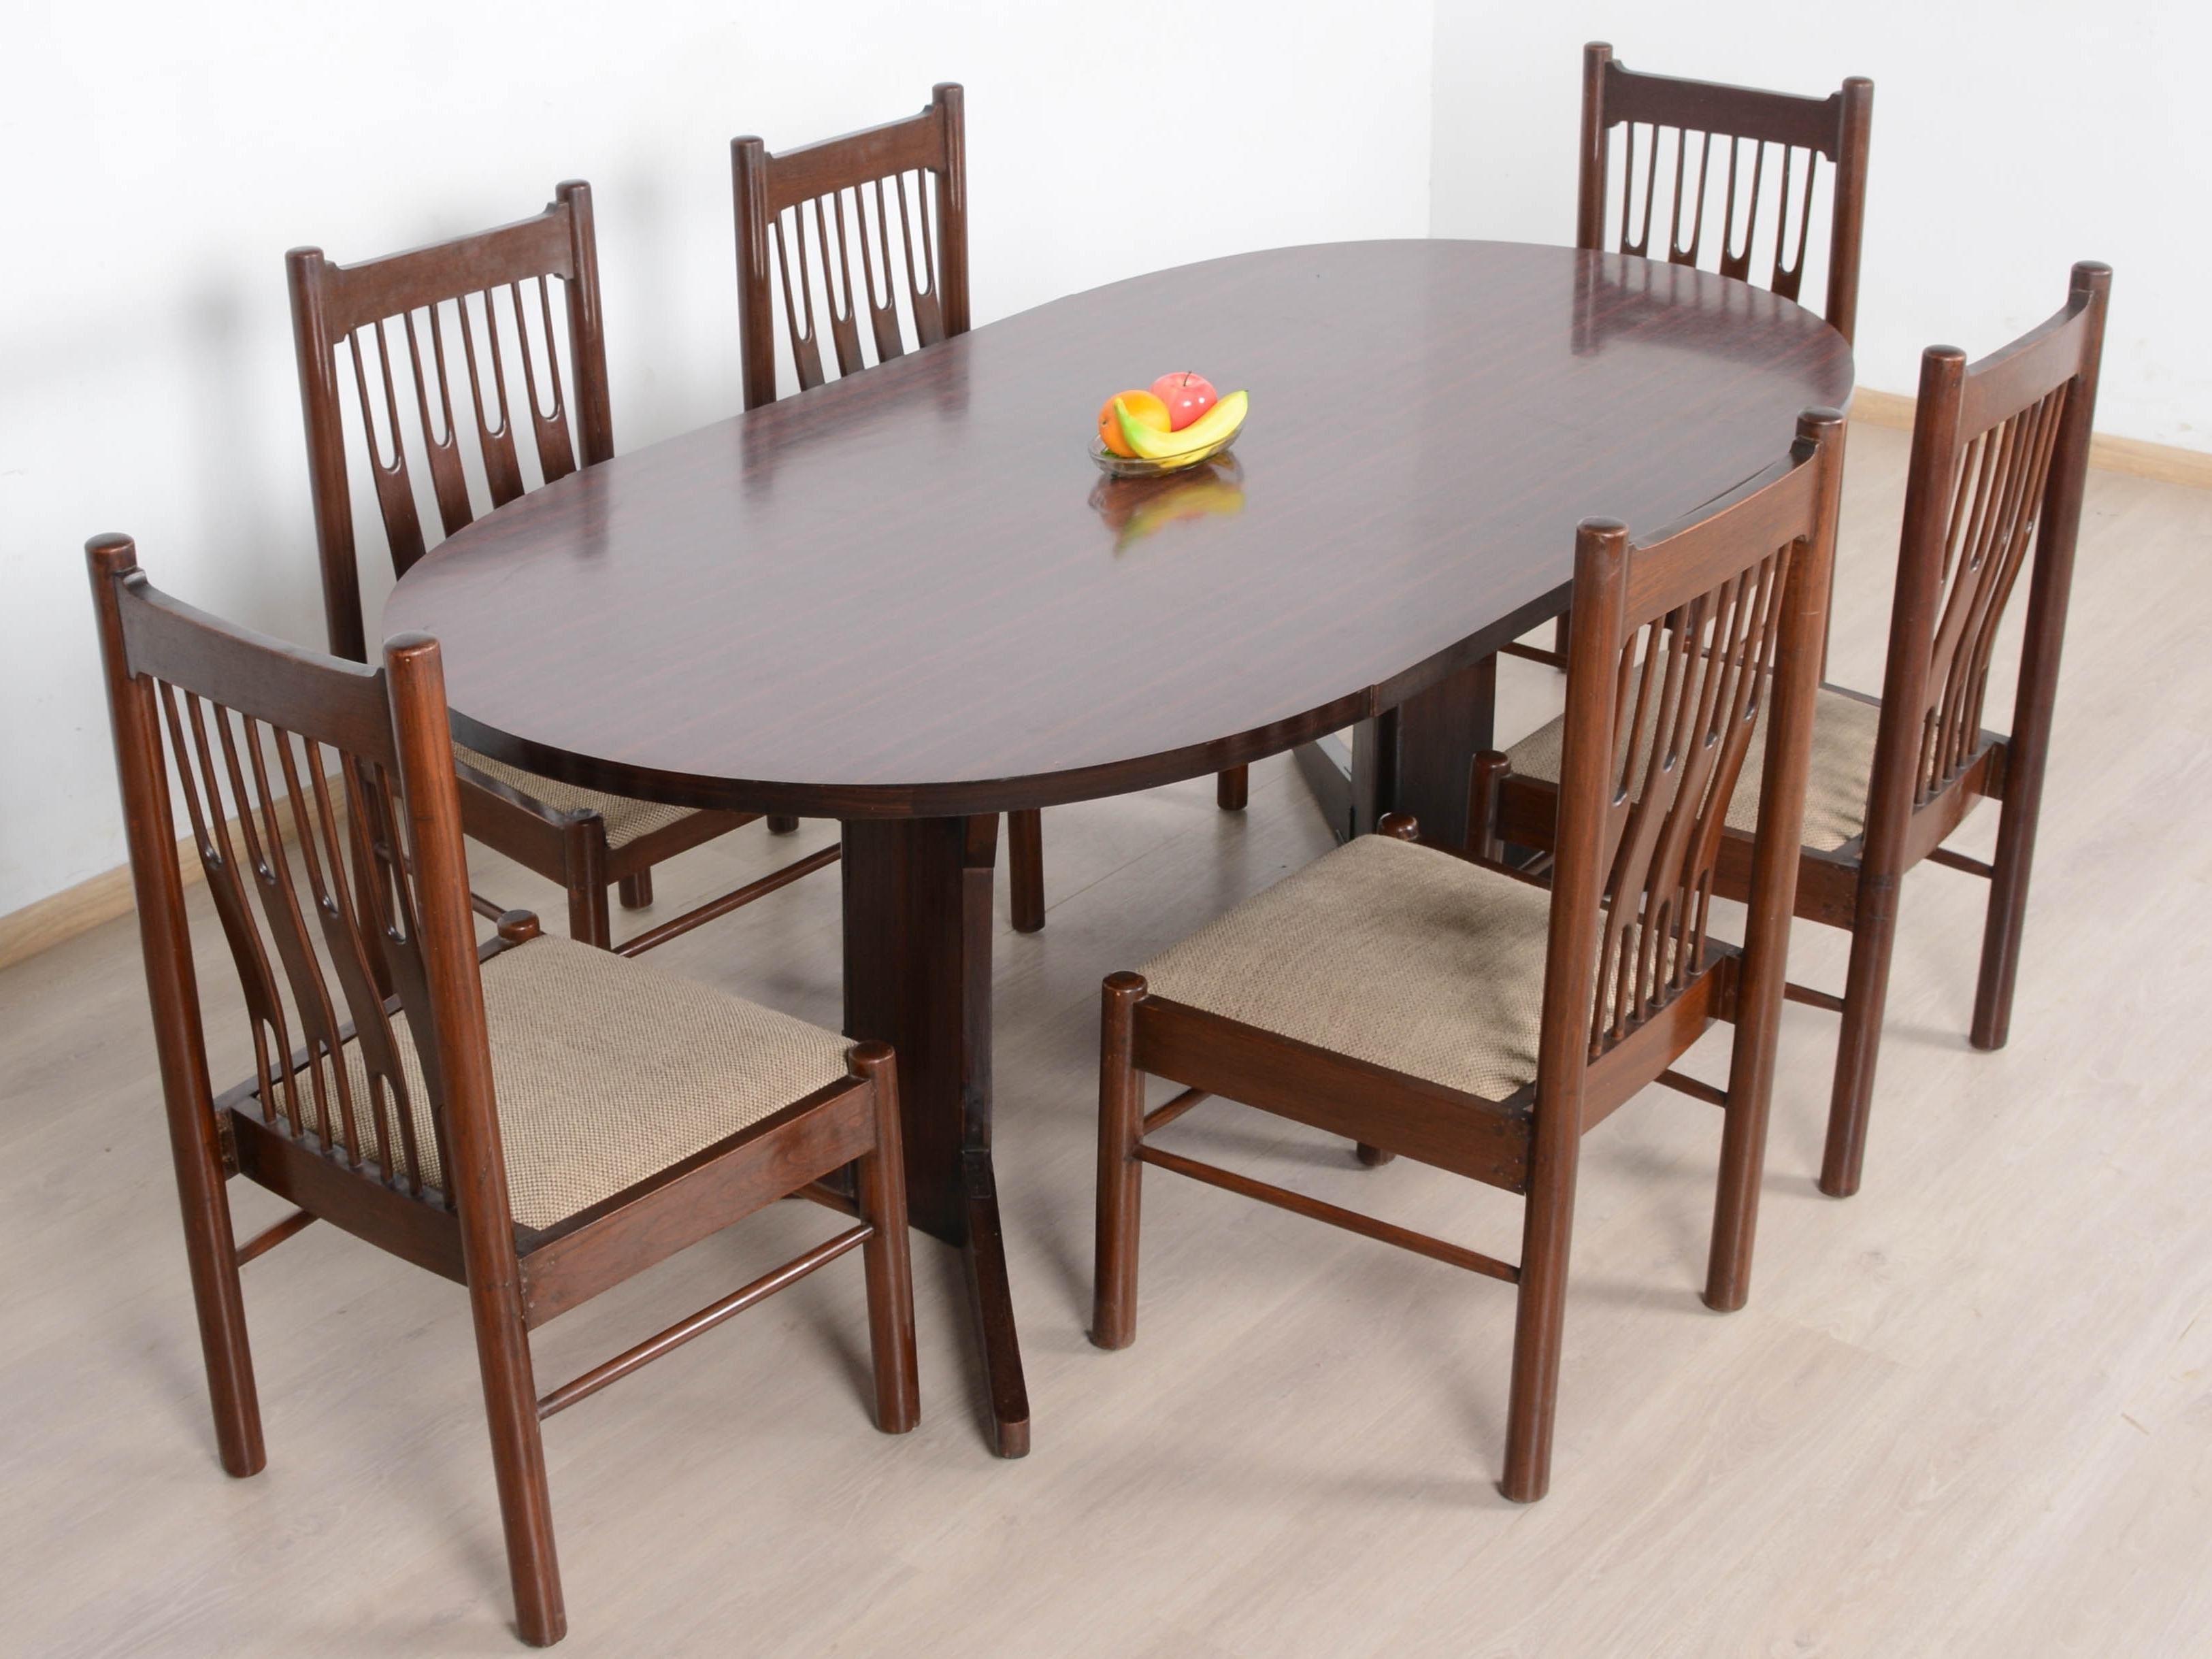 Most Recently Released Mason Teak 6 Seater Dining Table Set: Buy And Sell Used Furniture Pertaining To 6 Seat Dining Tables And Chairs (View 17 of 25)